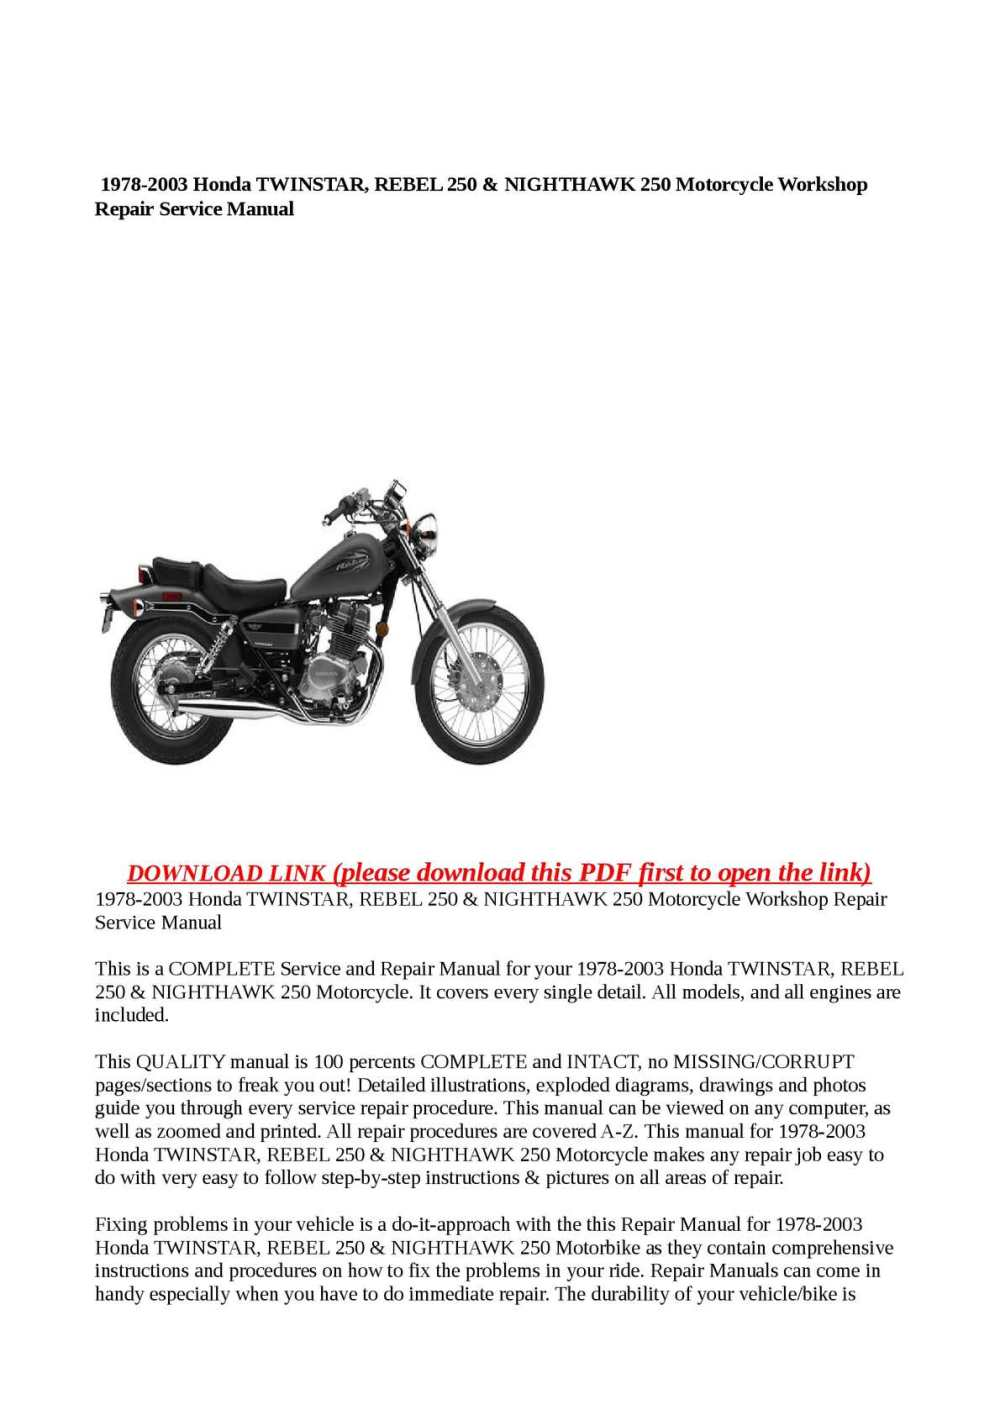 medium resolution of calam o 1978 2003 honda twinstar rebel 250 nighthawk 250 motorcycle workshop repair service manual